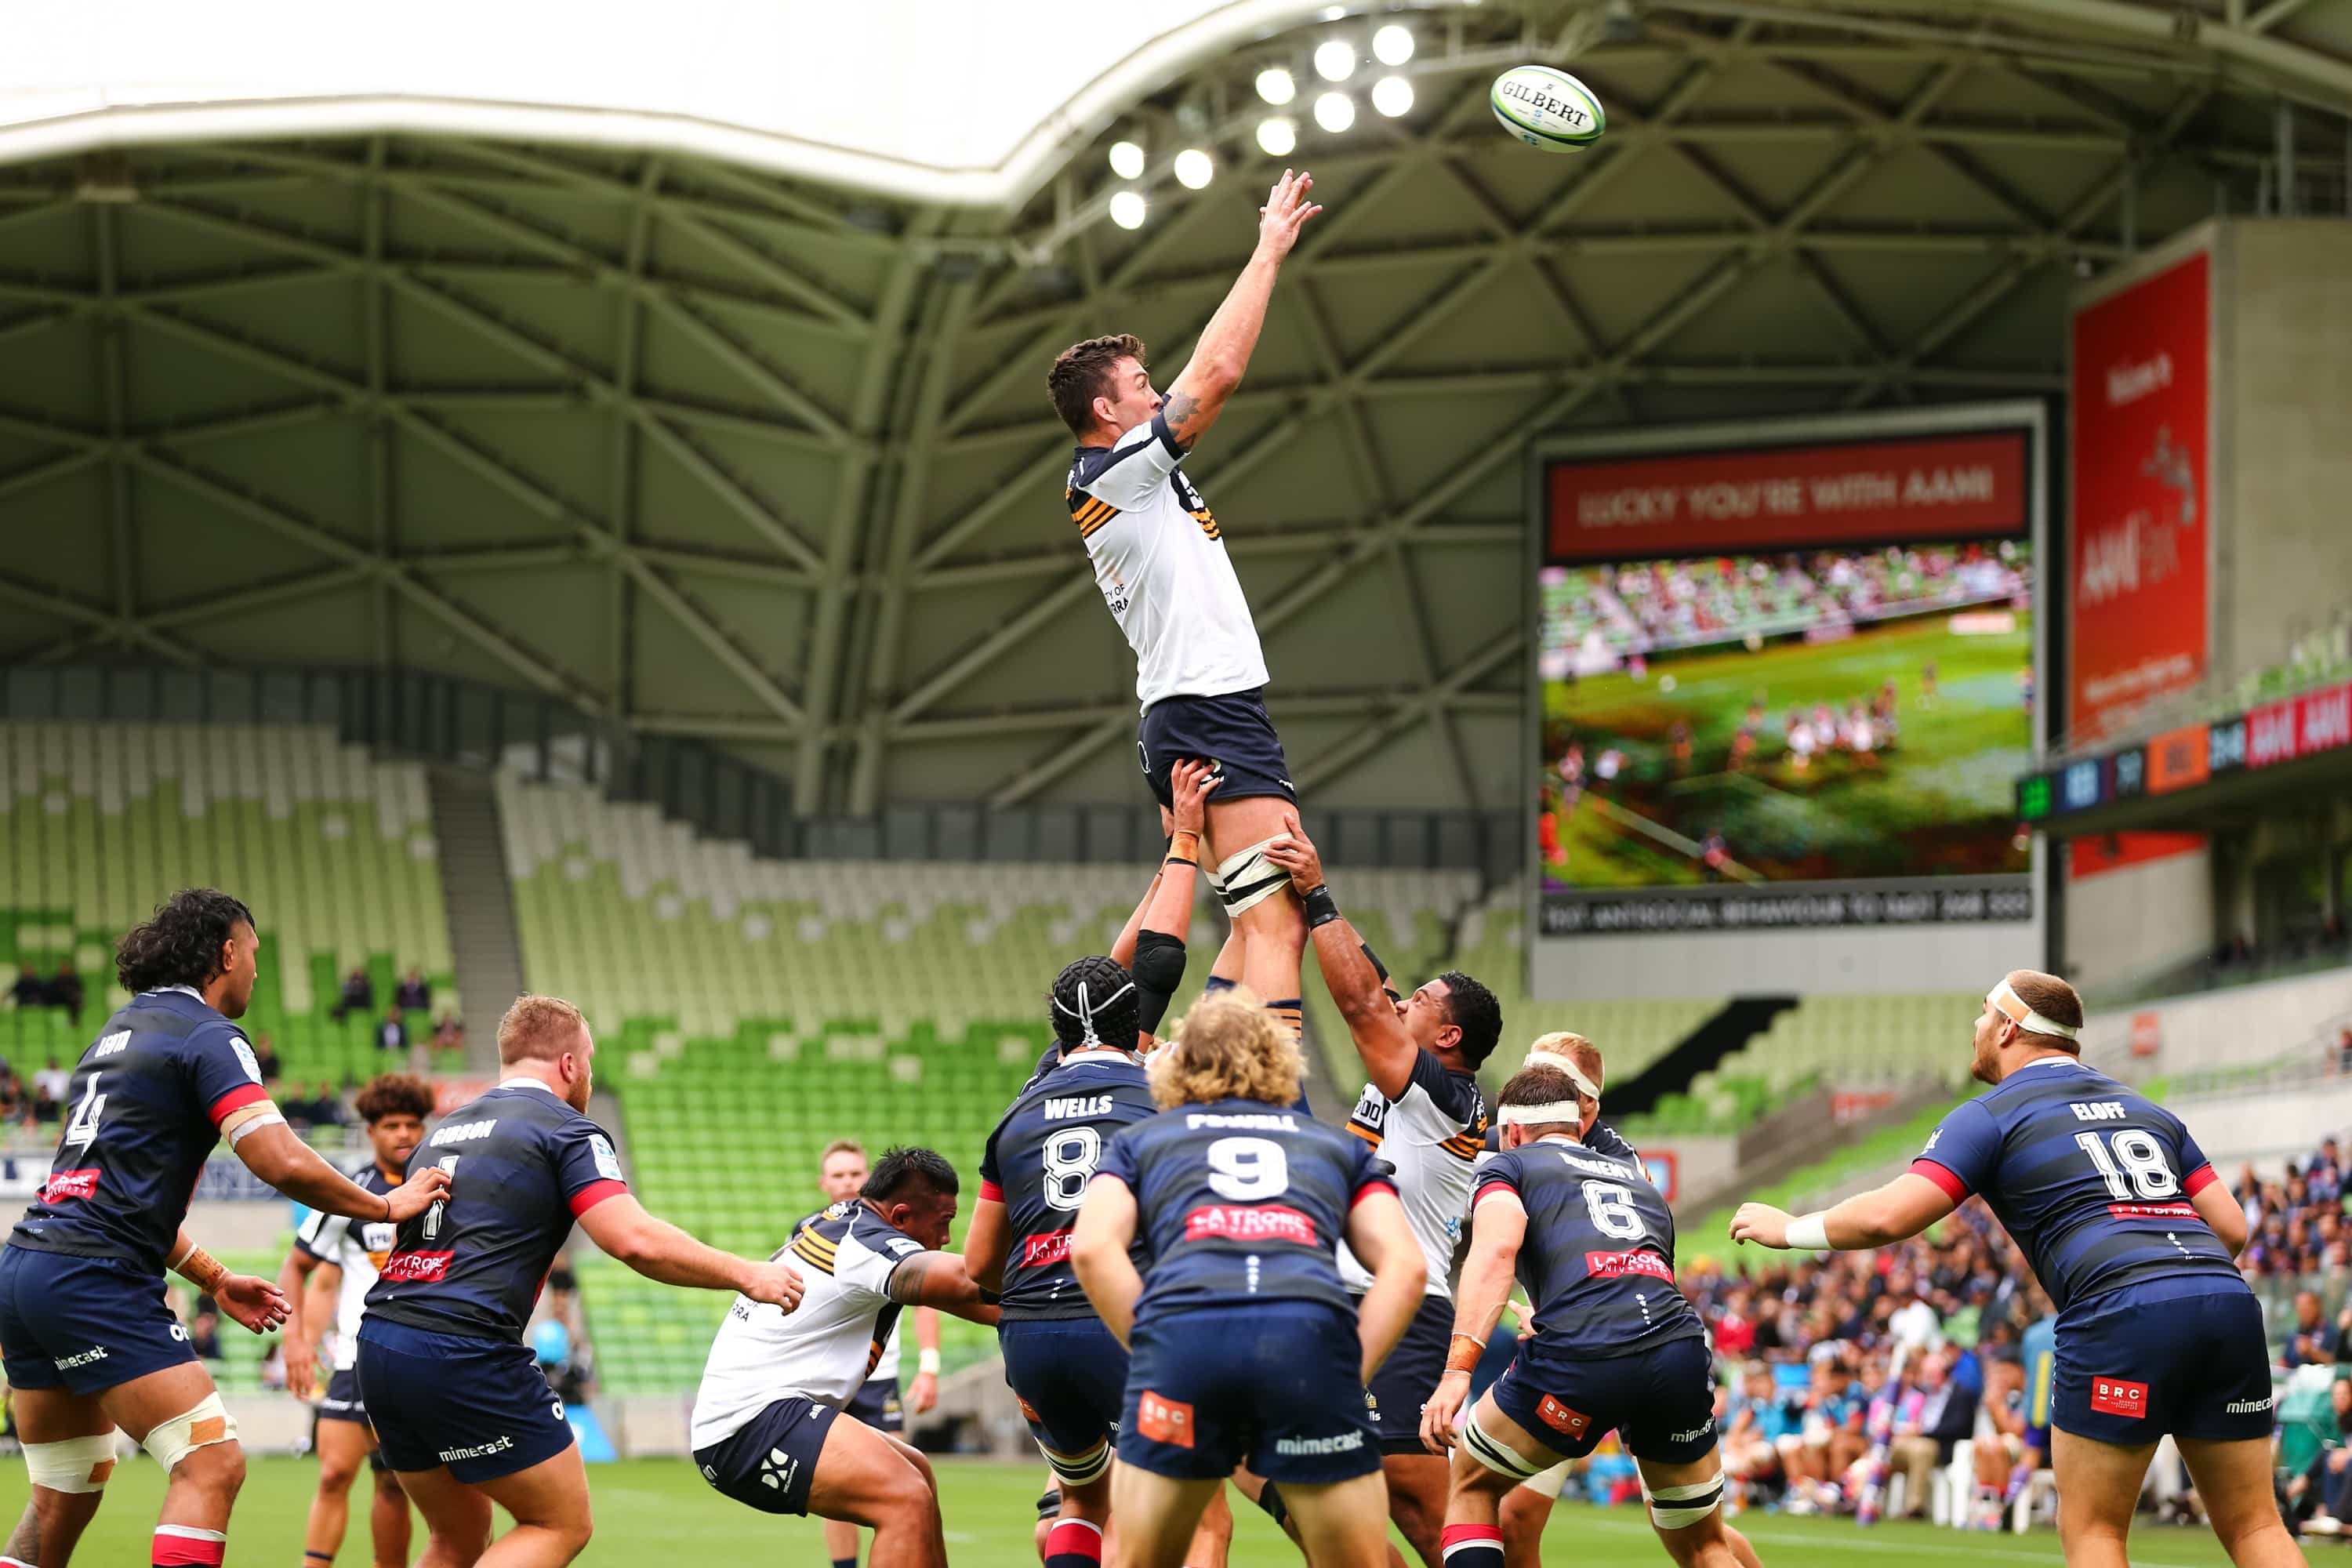 MELBOURNE, AUSTRALIA - APRIL 18: Cadeyrn Neville of the Brumbies catches the ball during the round nine Super Rugby AU match between the Melbourne Rebels and ACT Brumbies at AAMI Park on April 18, 2021 in Melbourne, Australia. (Photo by Speed Media/Icon Sportswire)